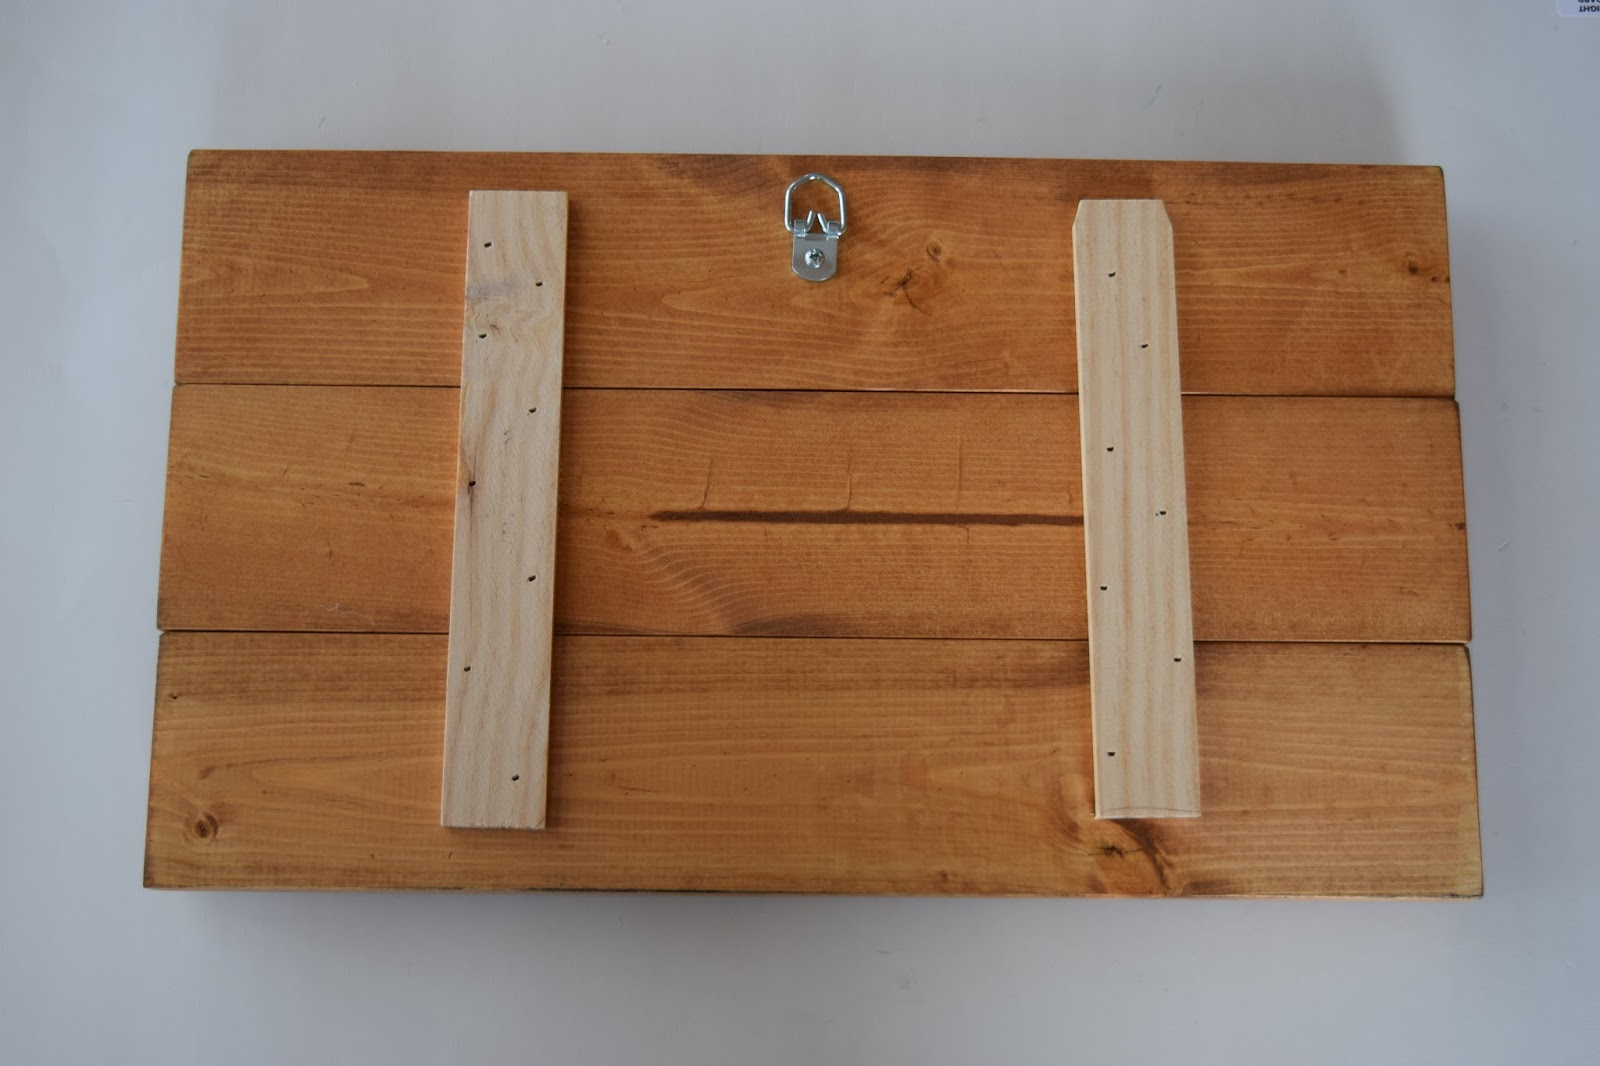 How to Make Karate Board Breaking Display